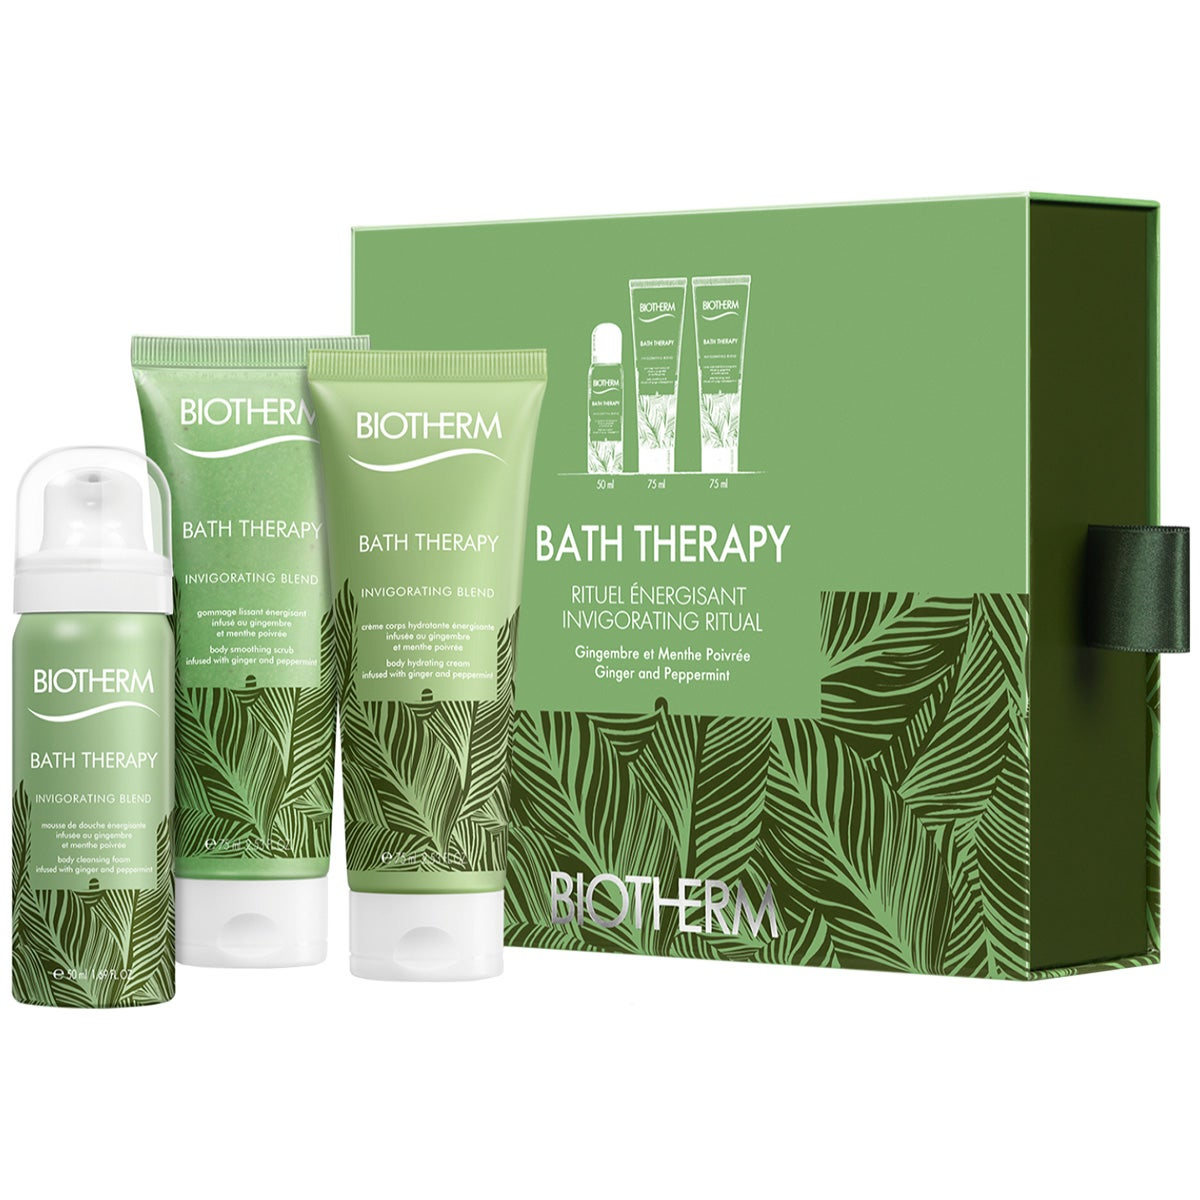 Biotherm Bath Therapy Invigorating Discover Set